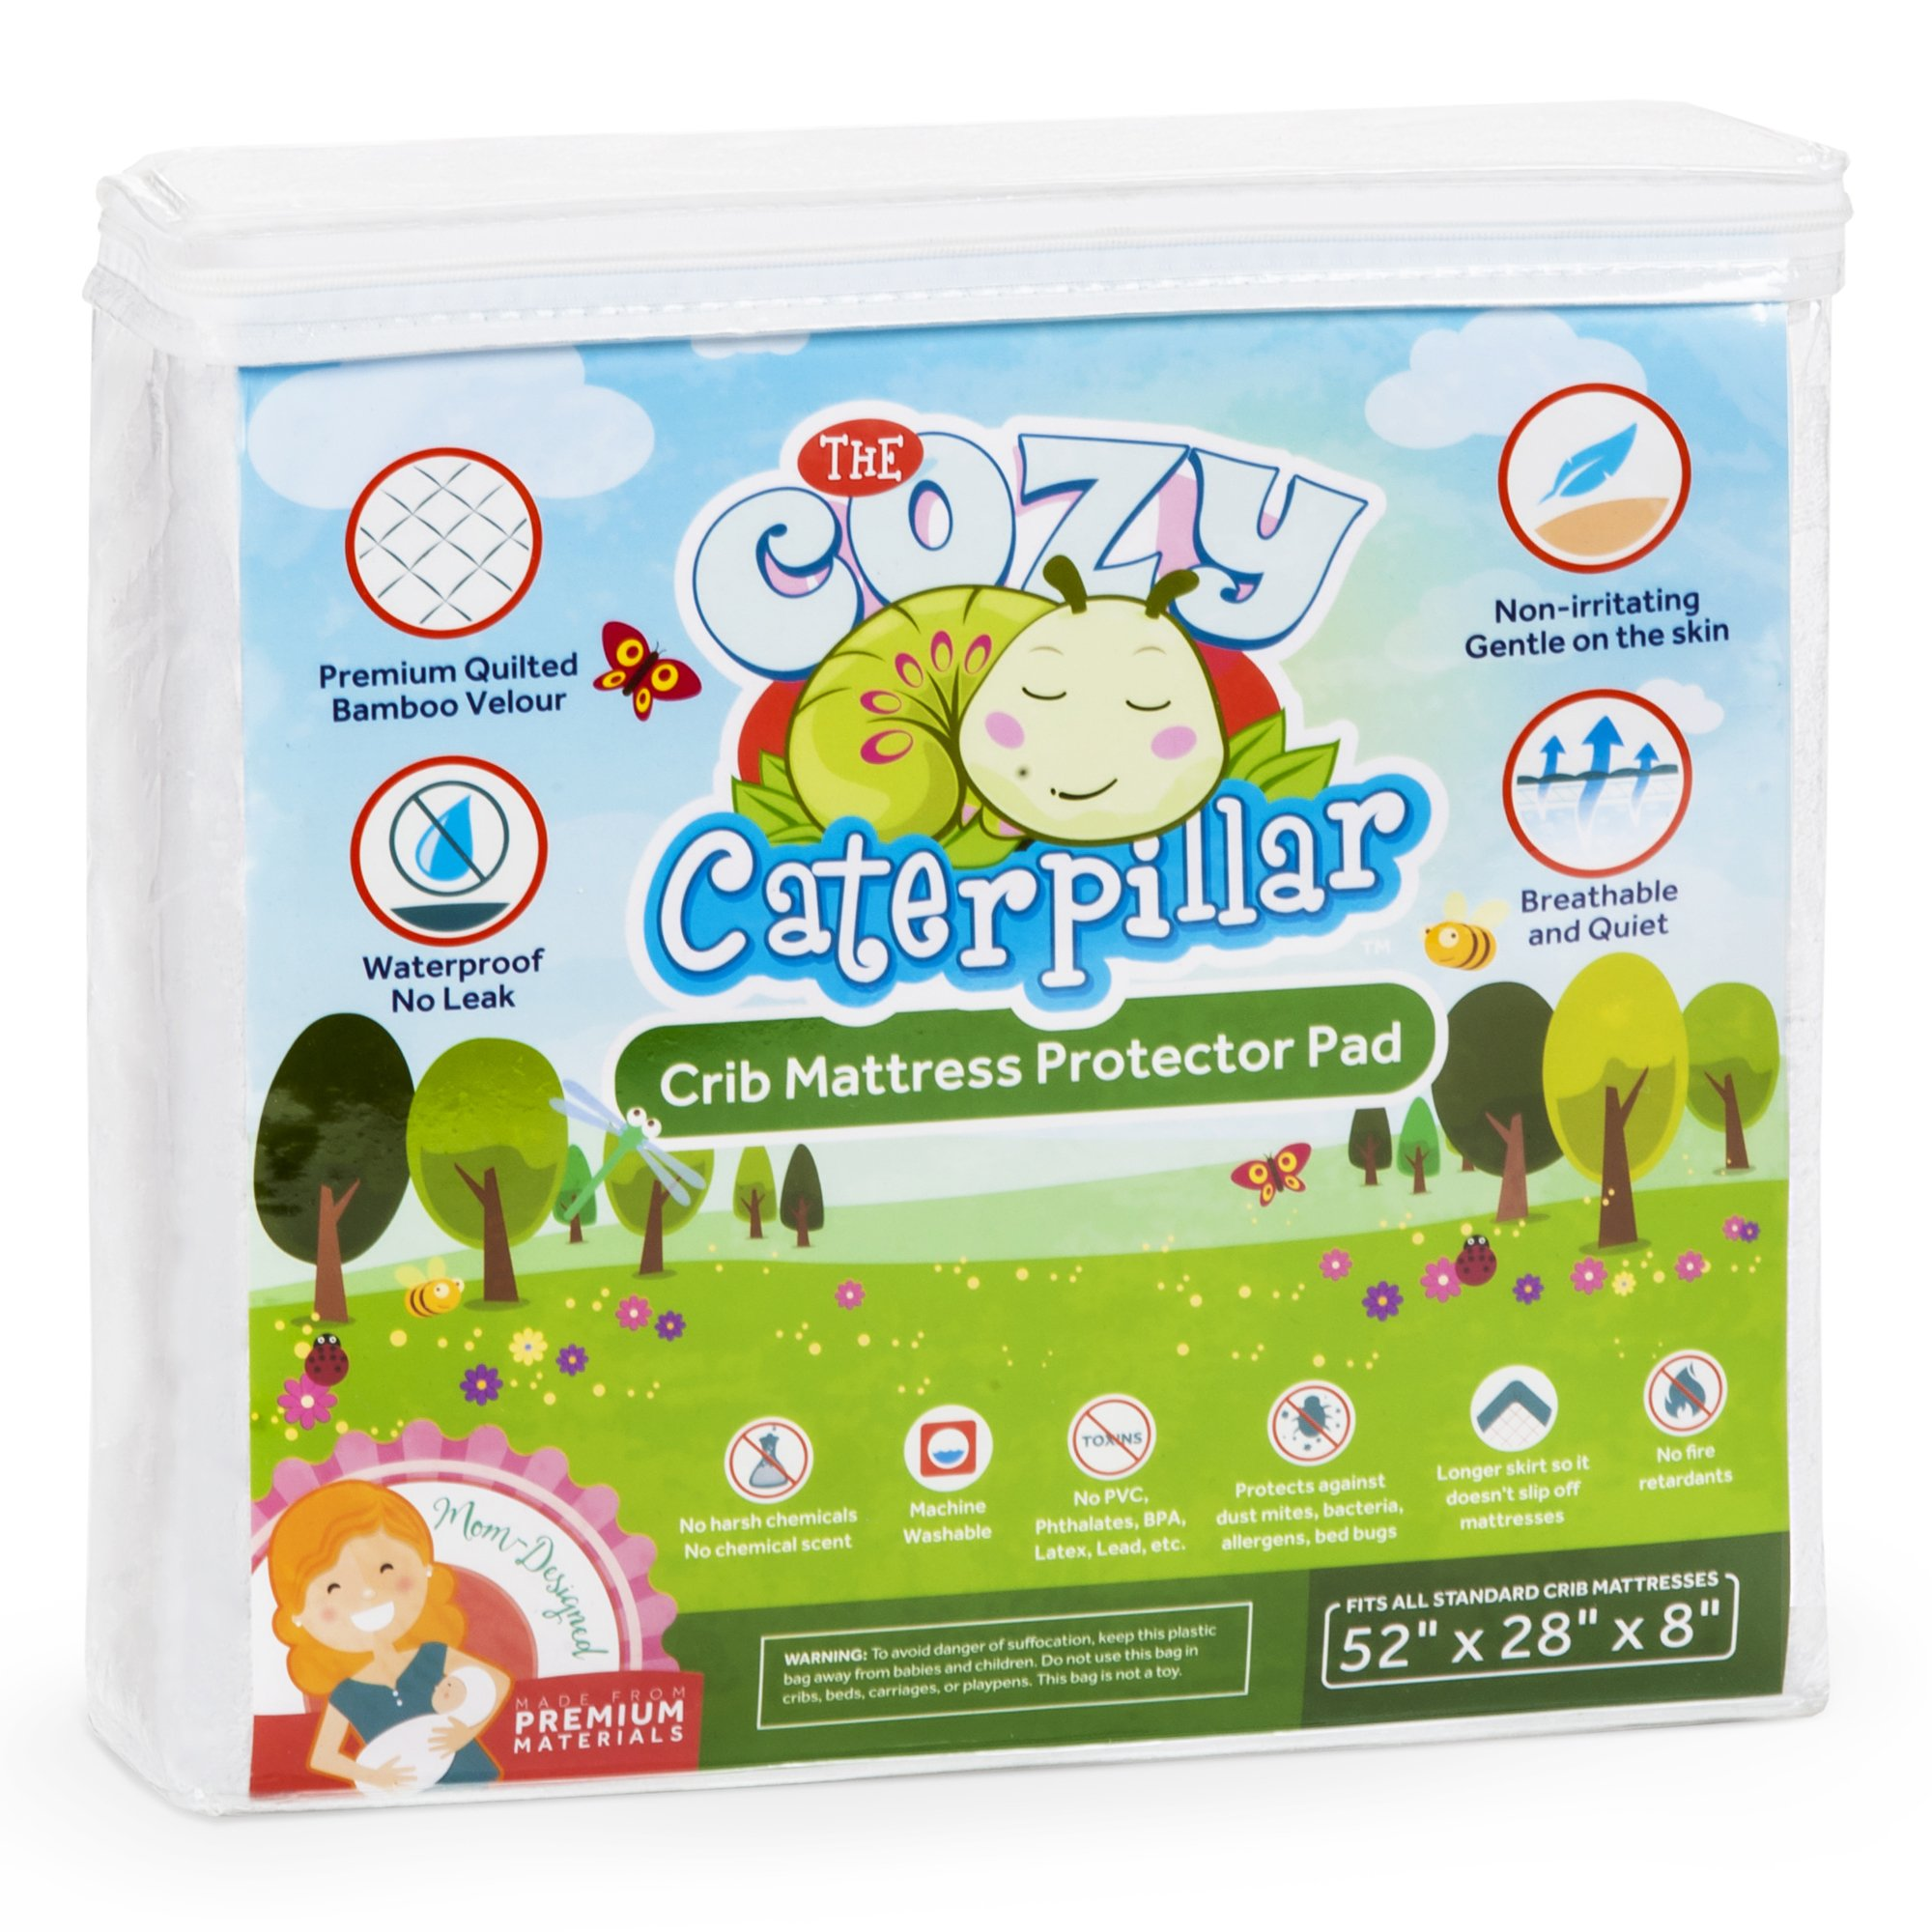 The Cozy Caterpillar Luxuriously Soft & Quilted Baby Crib Mattress Protector Pad | 100% Waterproof | Made of Bamboo Velour | Hypoallergenic | Eco-Friendly | Washer & Dryer Safe | No Harsh Chemicals